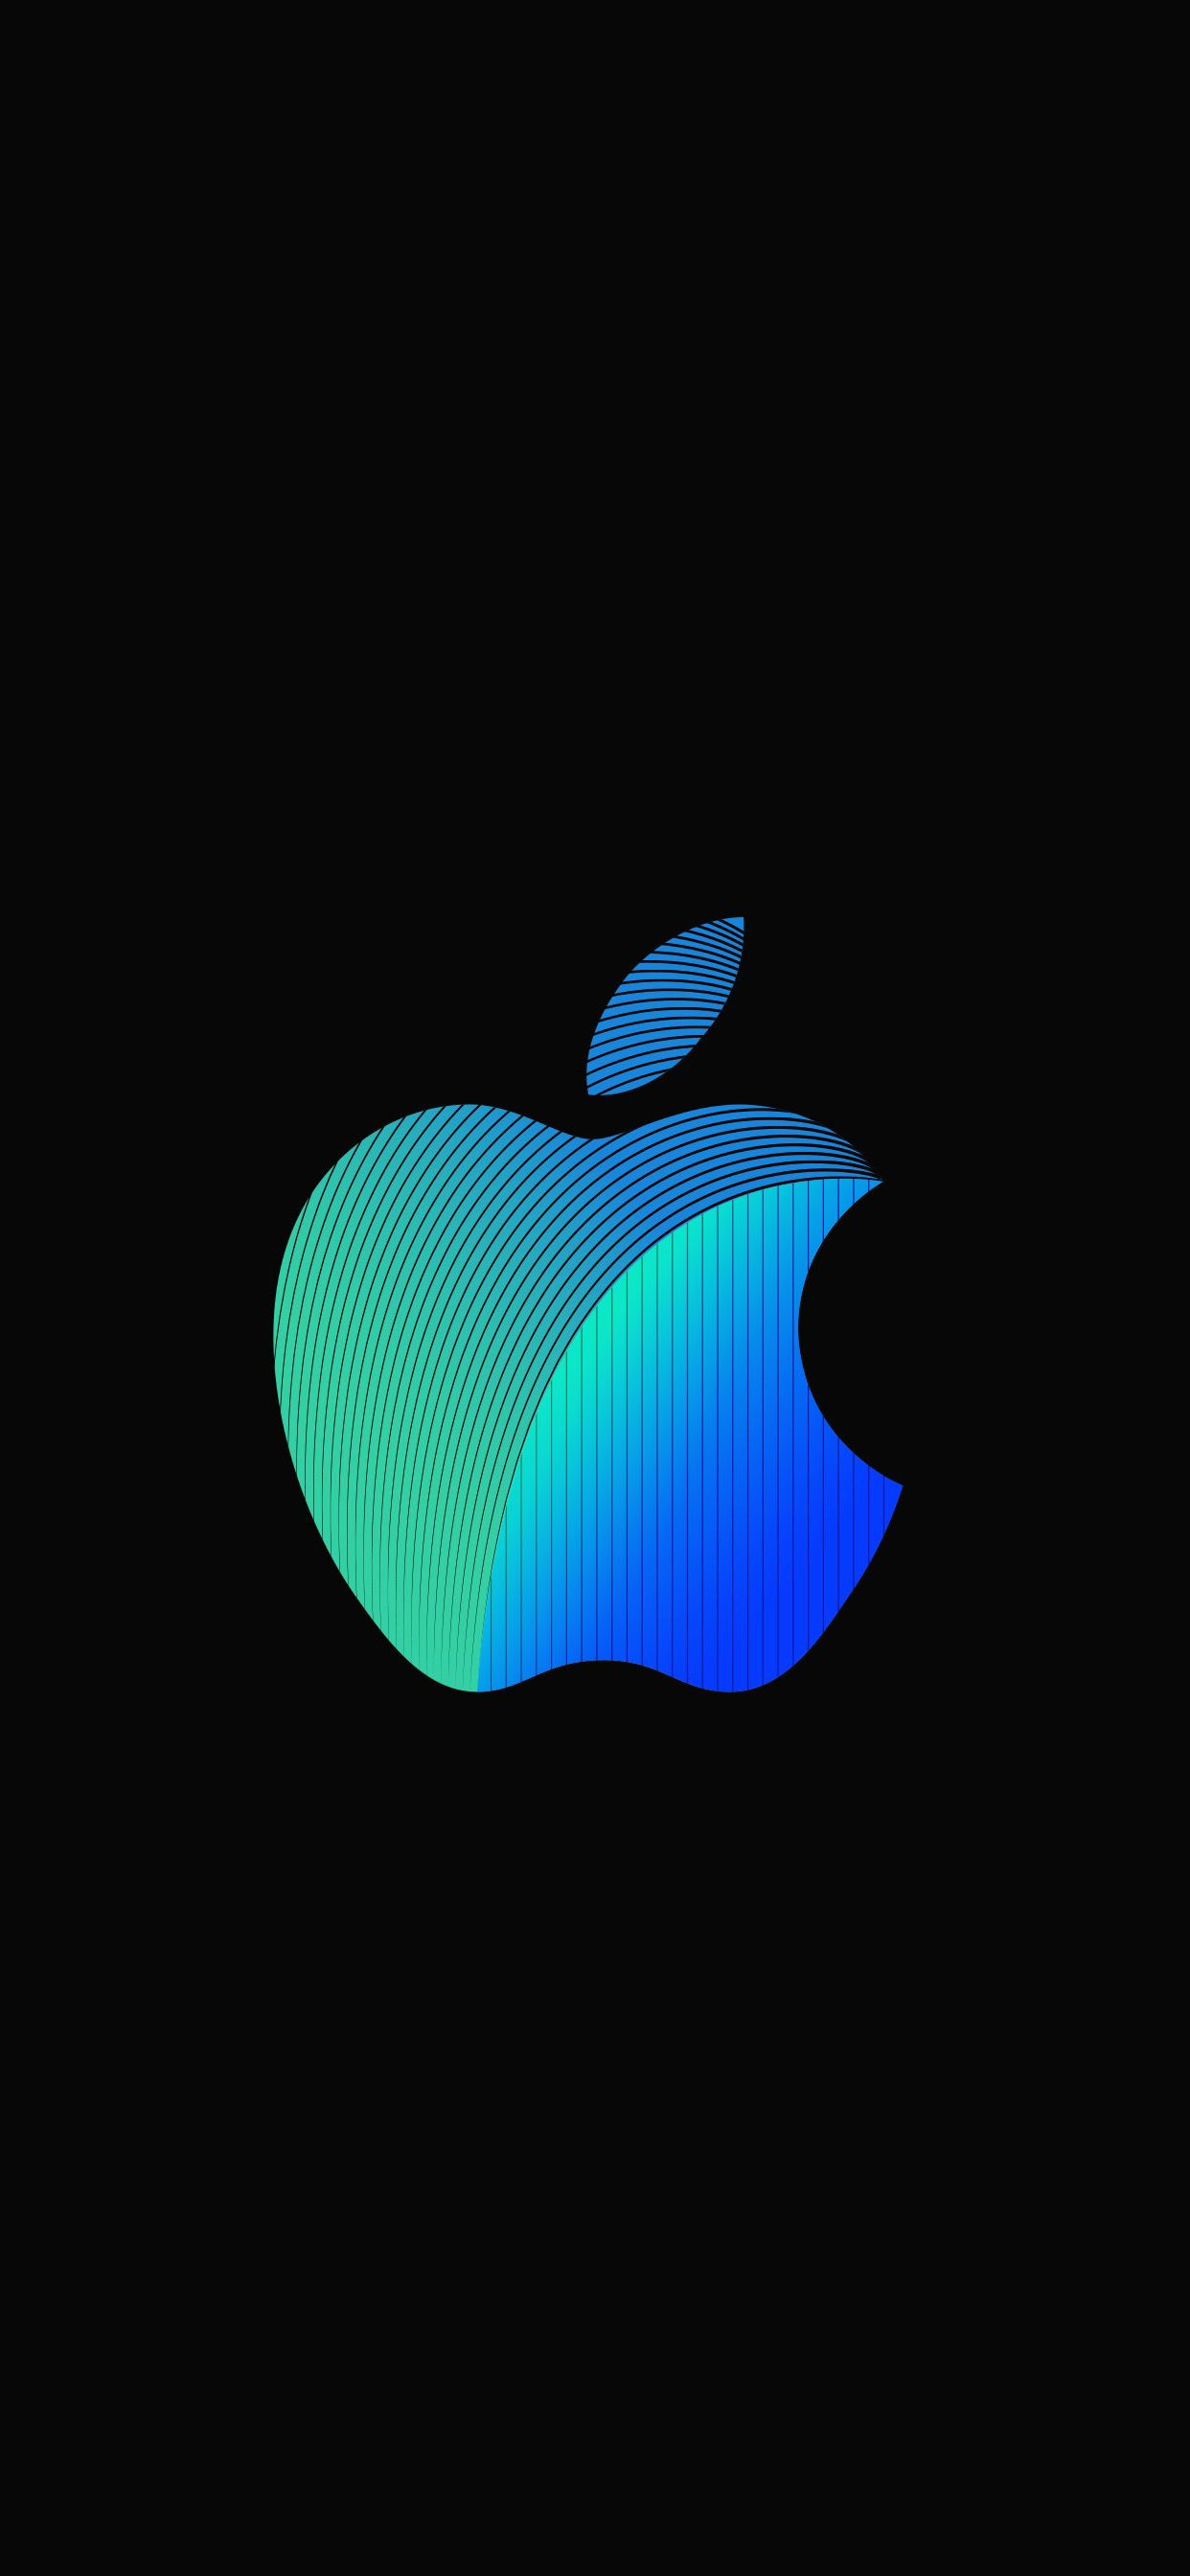 Applelogo Appleiphone Appleipad Ios13 Iphonewallpaper Apple Iphone Wallpaper Hd Apple Wallpaper Apple Logo Wallpaper